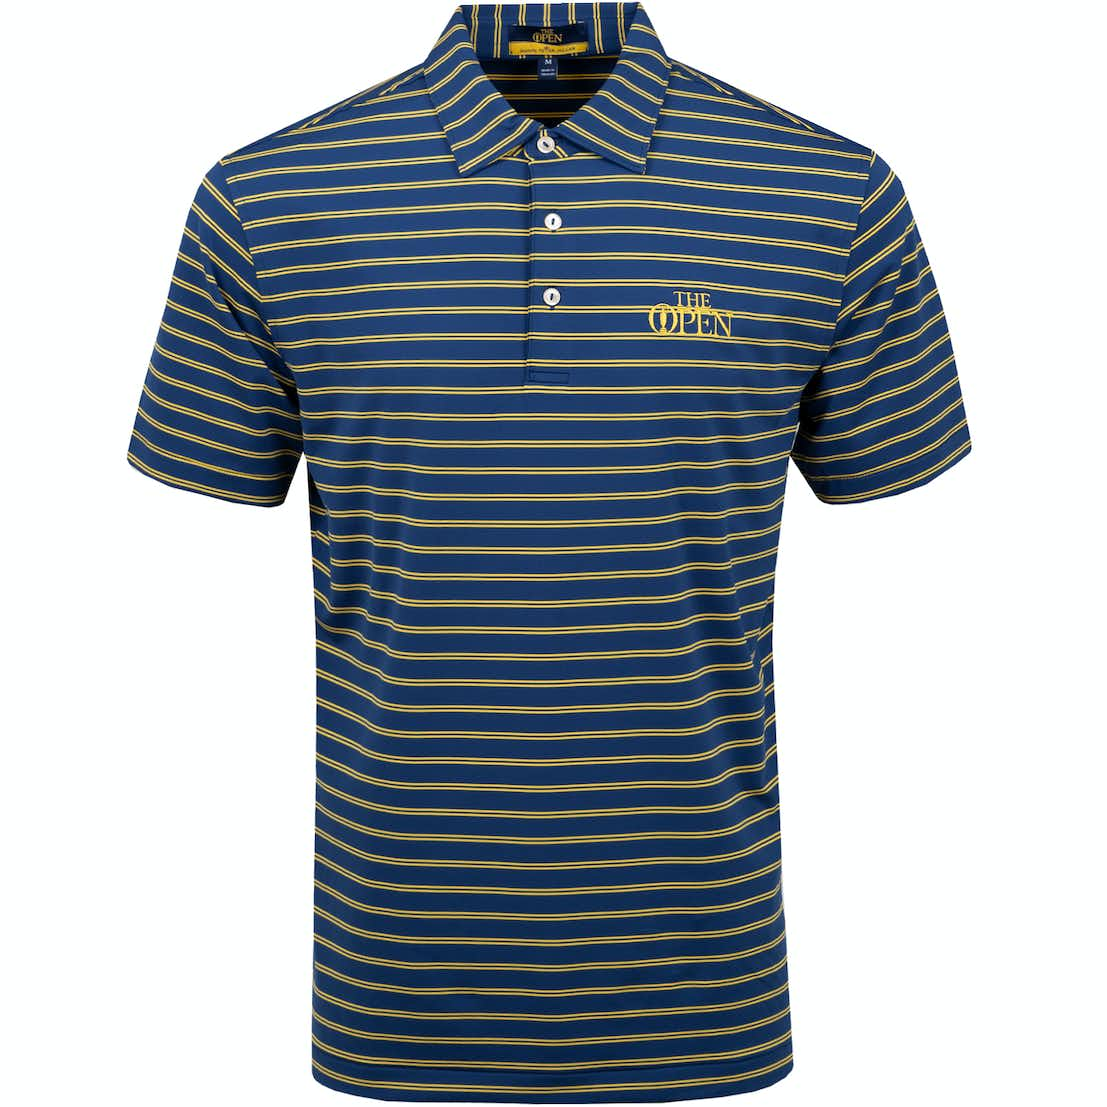 The Open Striped Polo Shirt - Blue and Yellow